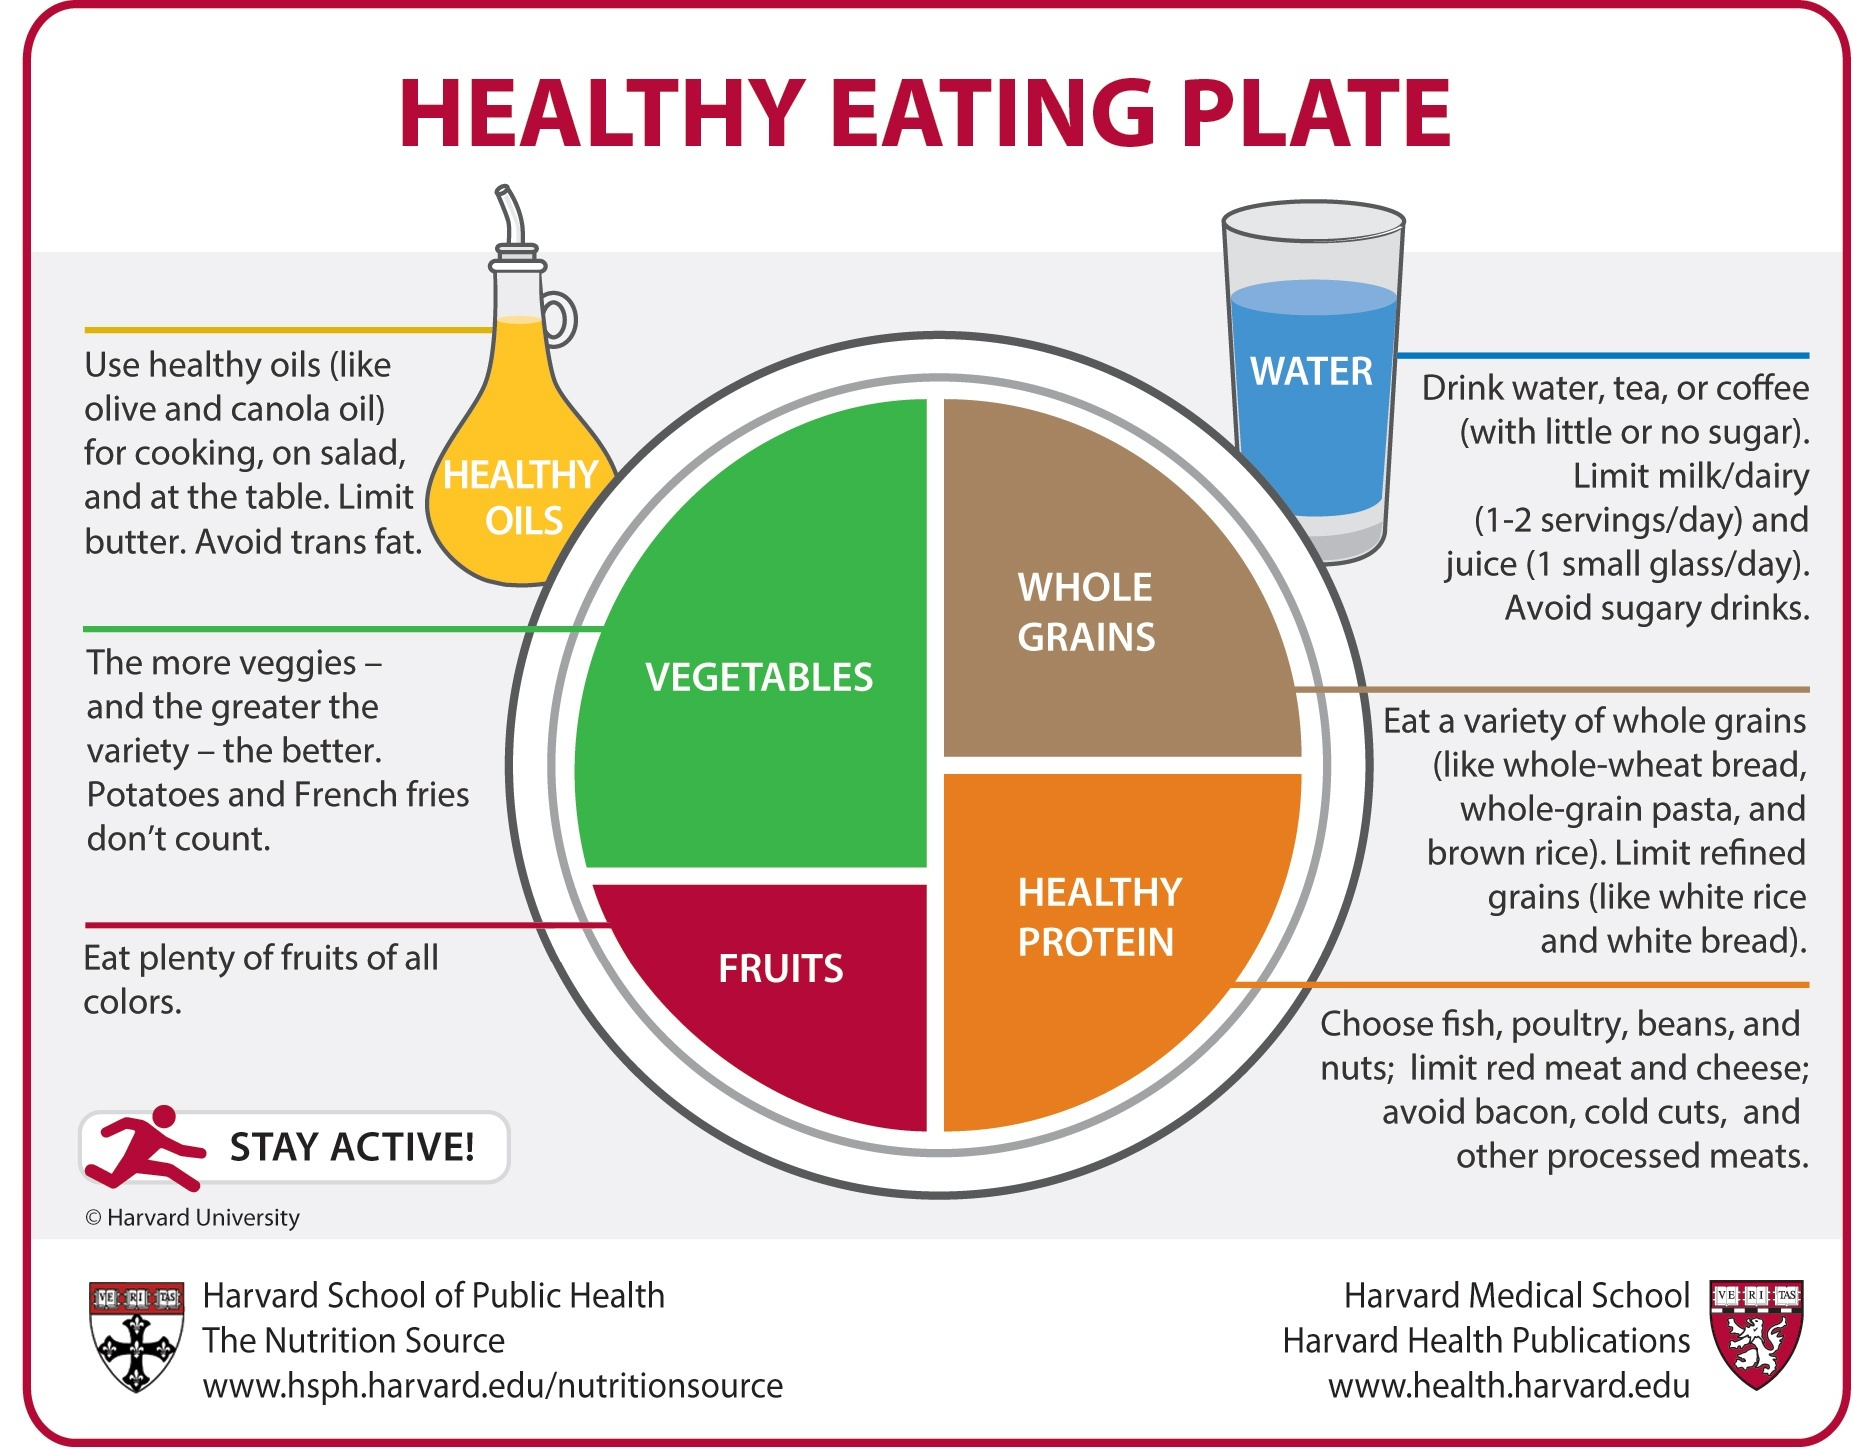 nutrition   pomona college in claremont california  pomona college nutrition  healthy eating plate